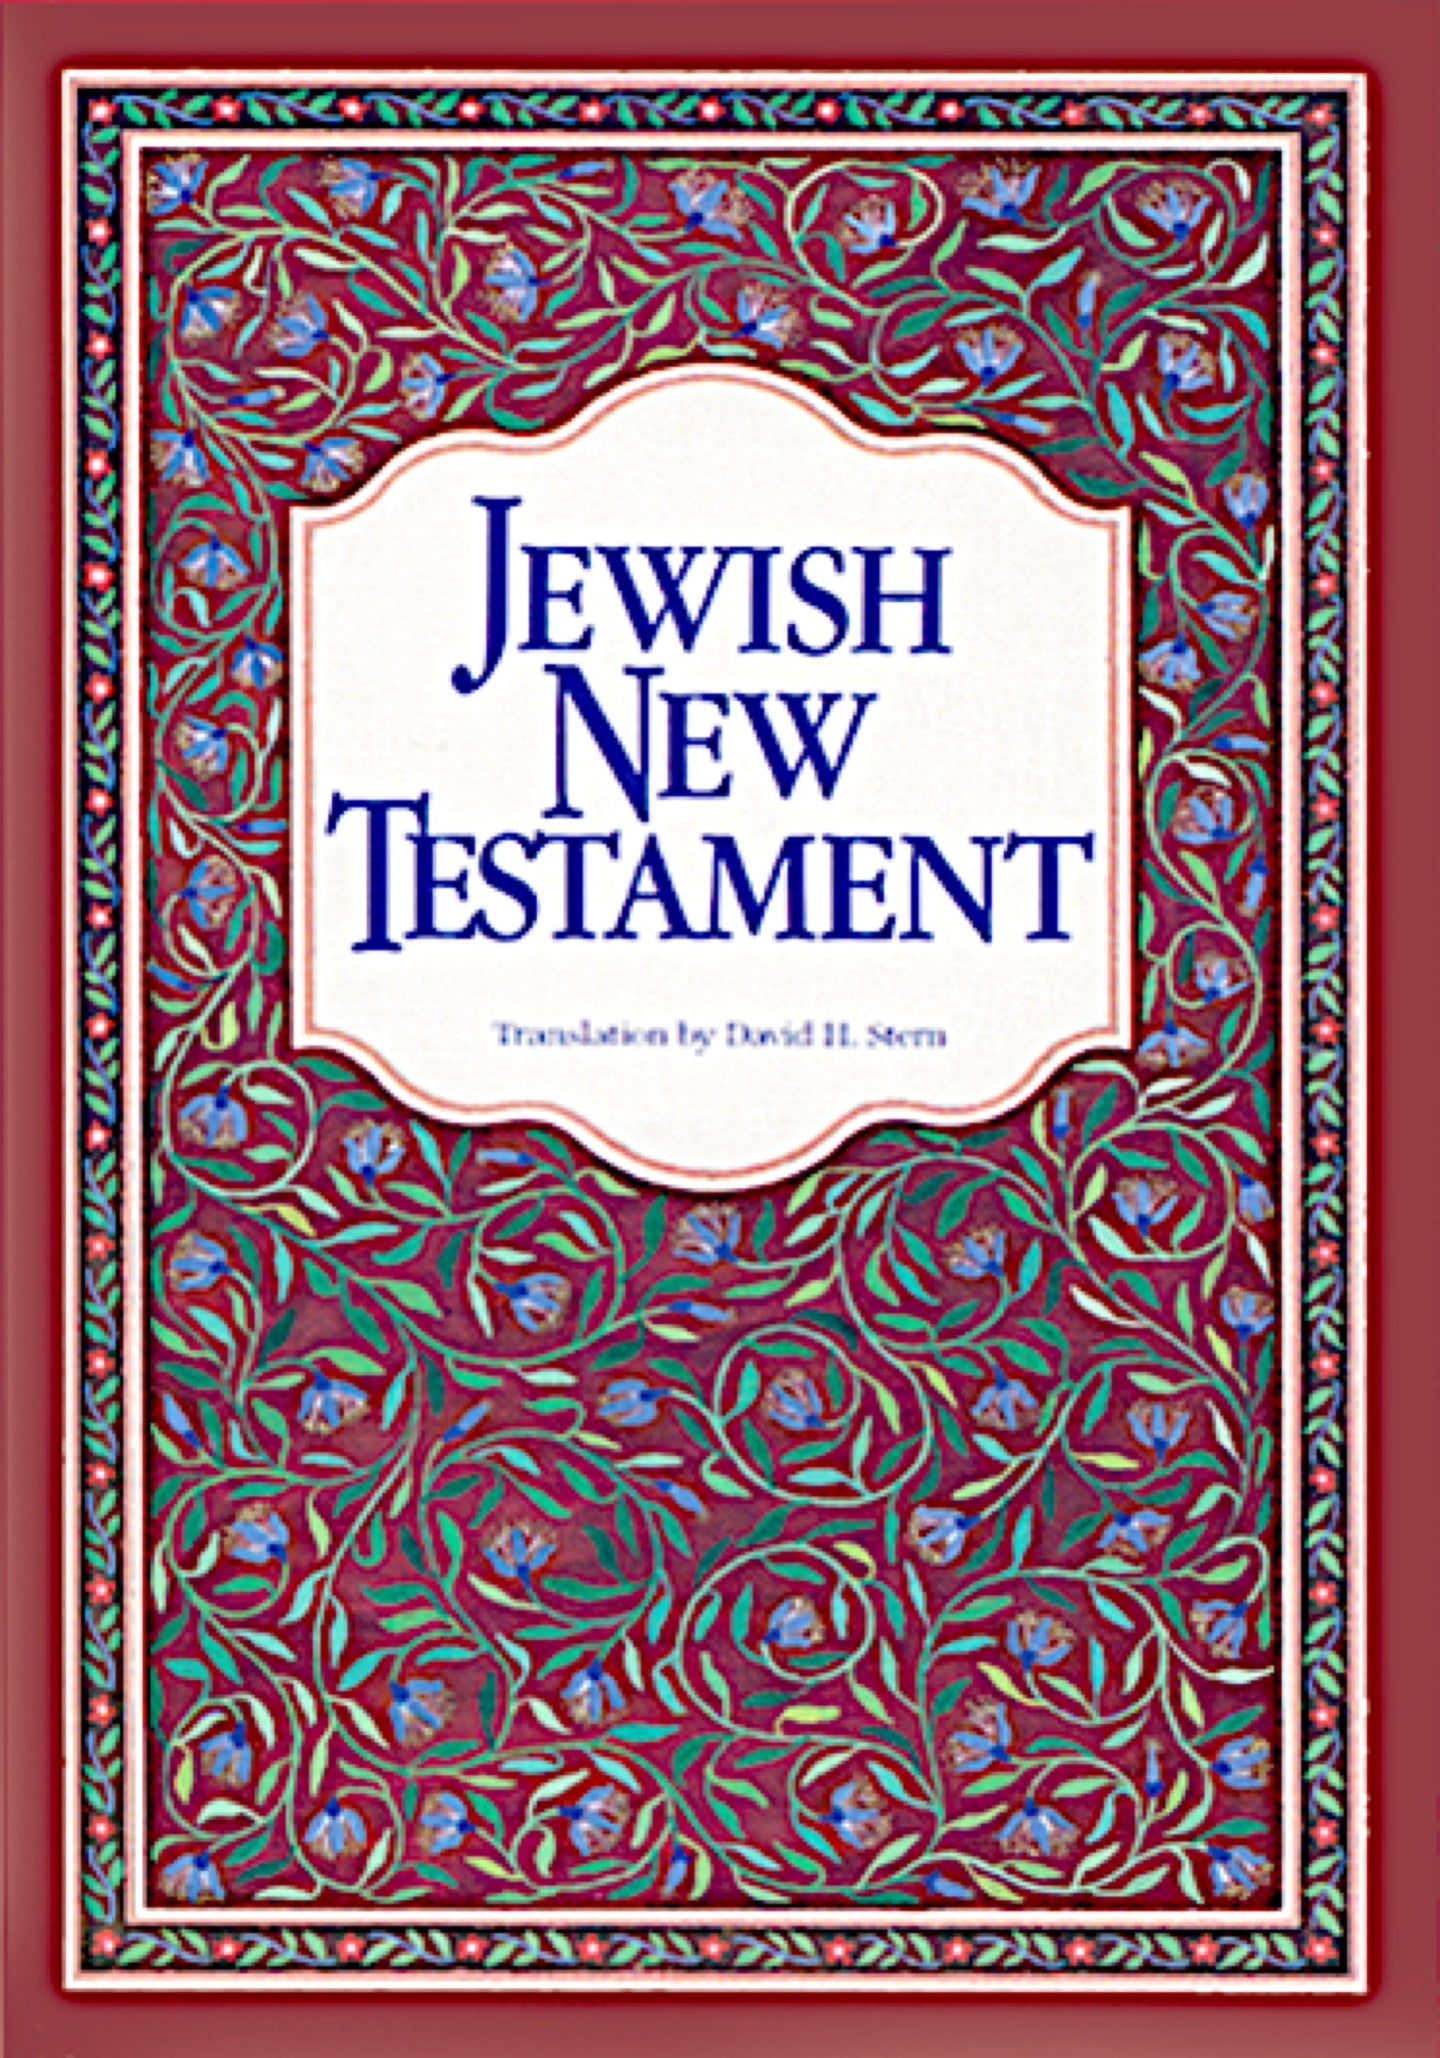 Jewish New Testament: A Translation by David H. Stern